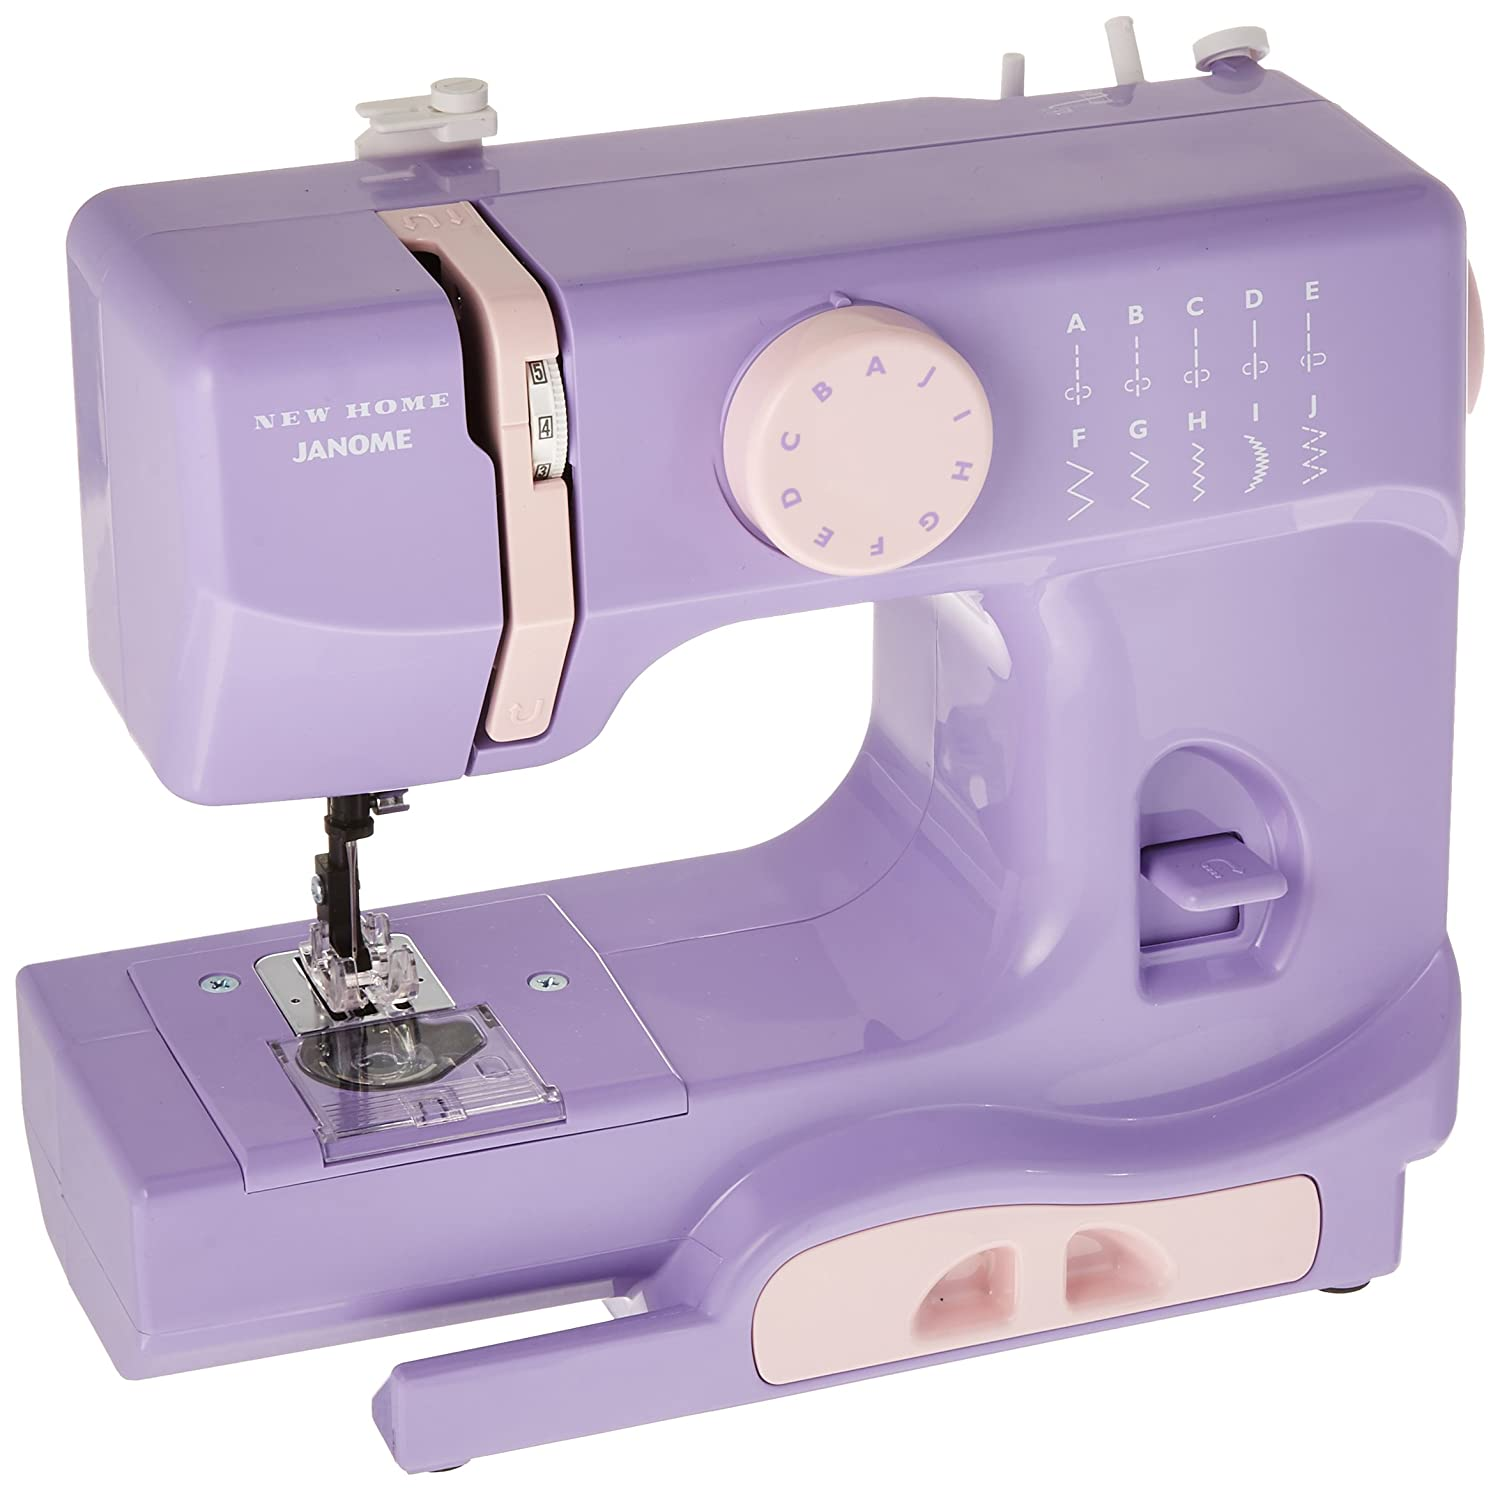 Janome 001THUNDER Basic, Easy-to-Use, 10-Stitch Portable, Compact Sewing Machine with Free Arm only 5 pounds